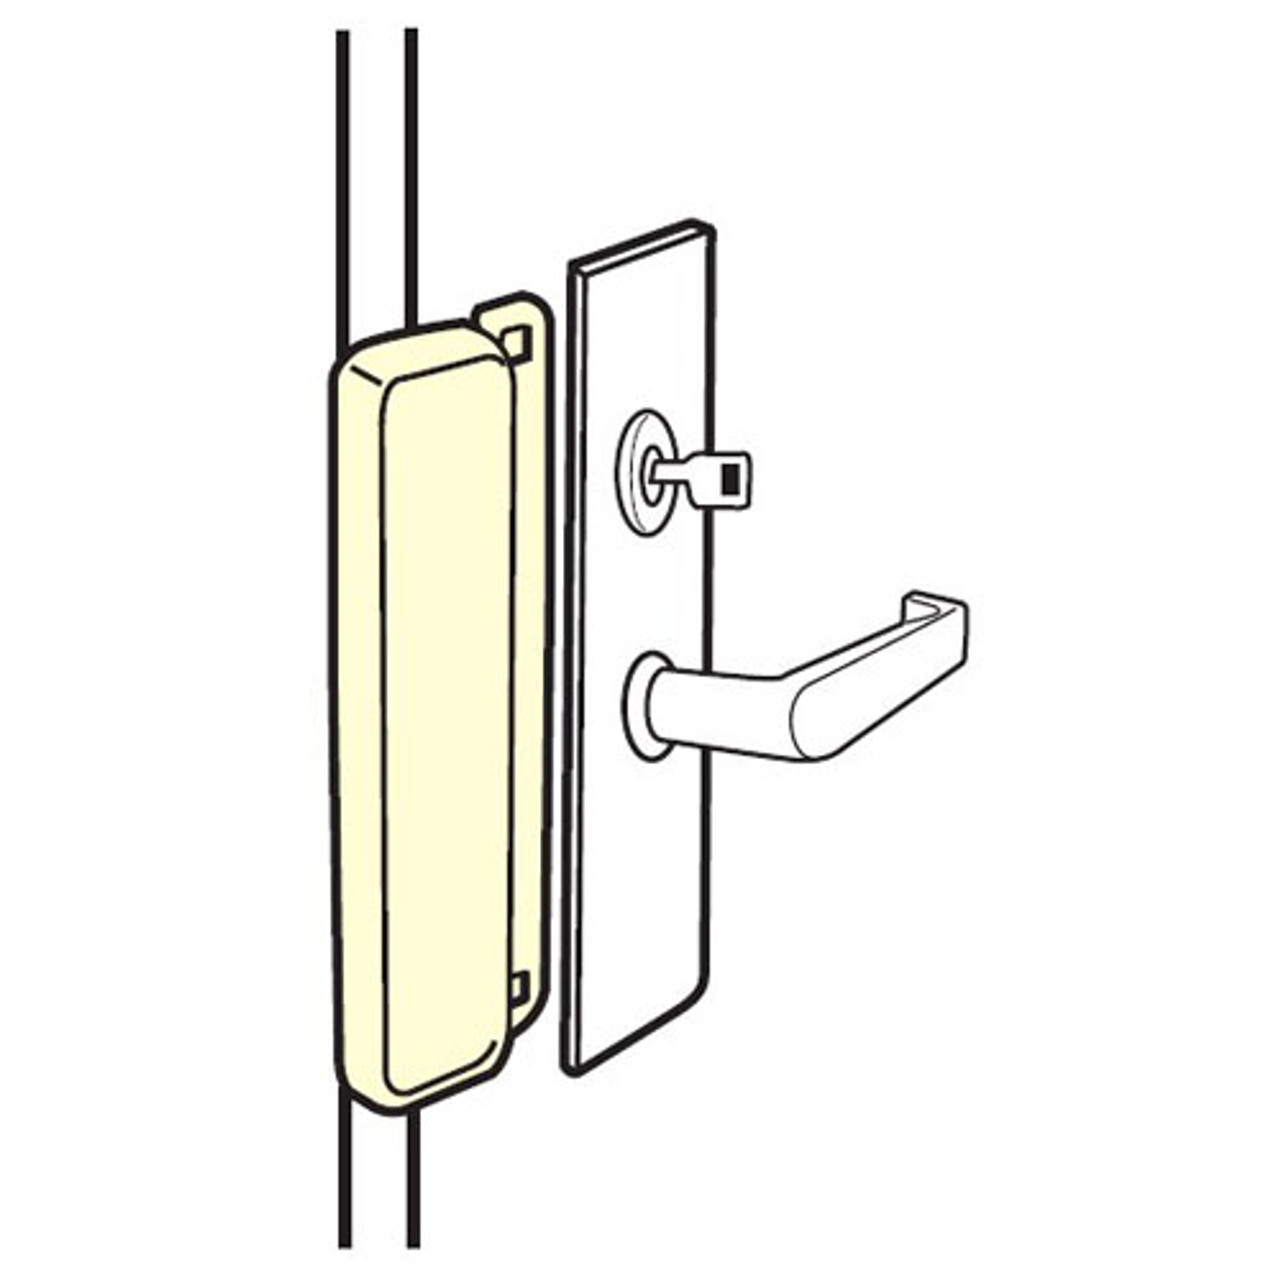 MELP-210-EBF-SL Don Jo Latch Protector for Electric Strikes in Silver Coated Finish